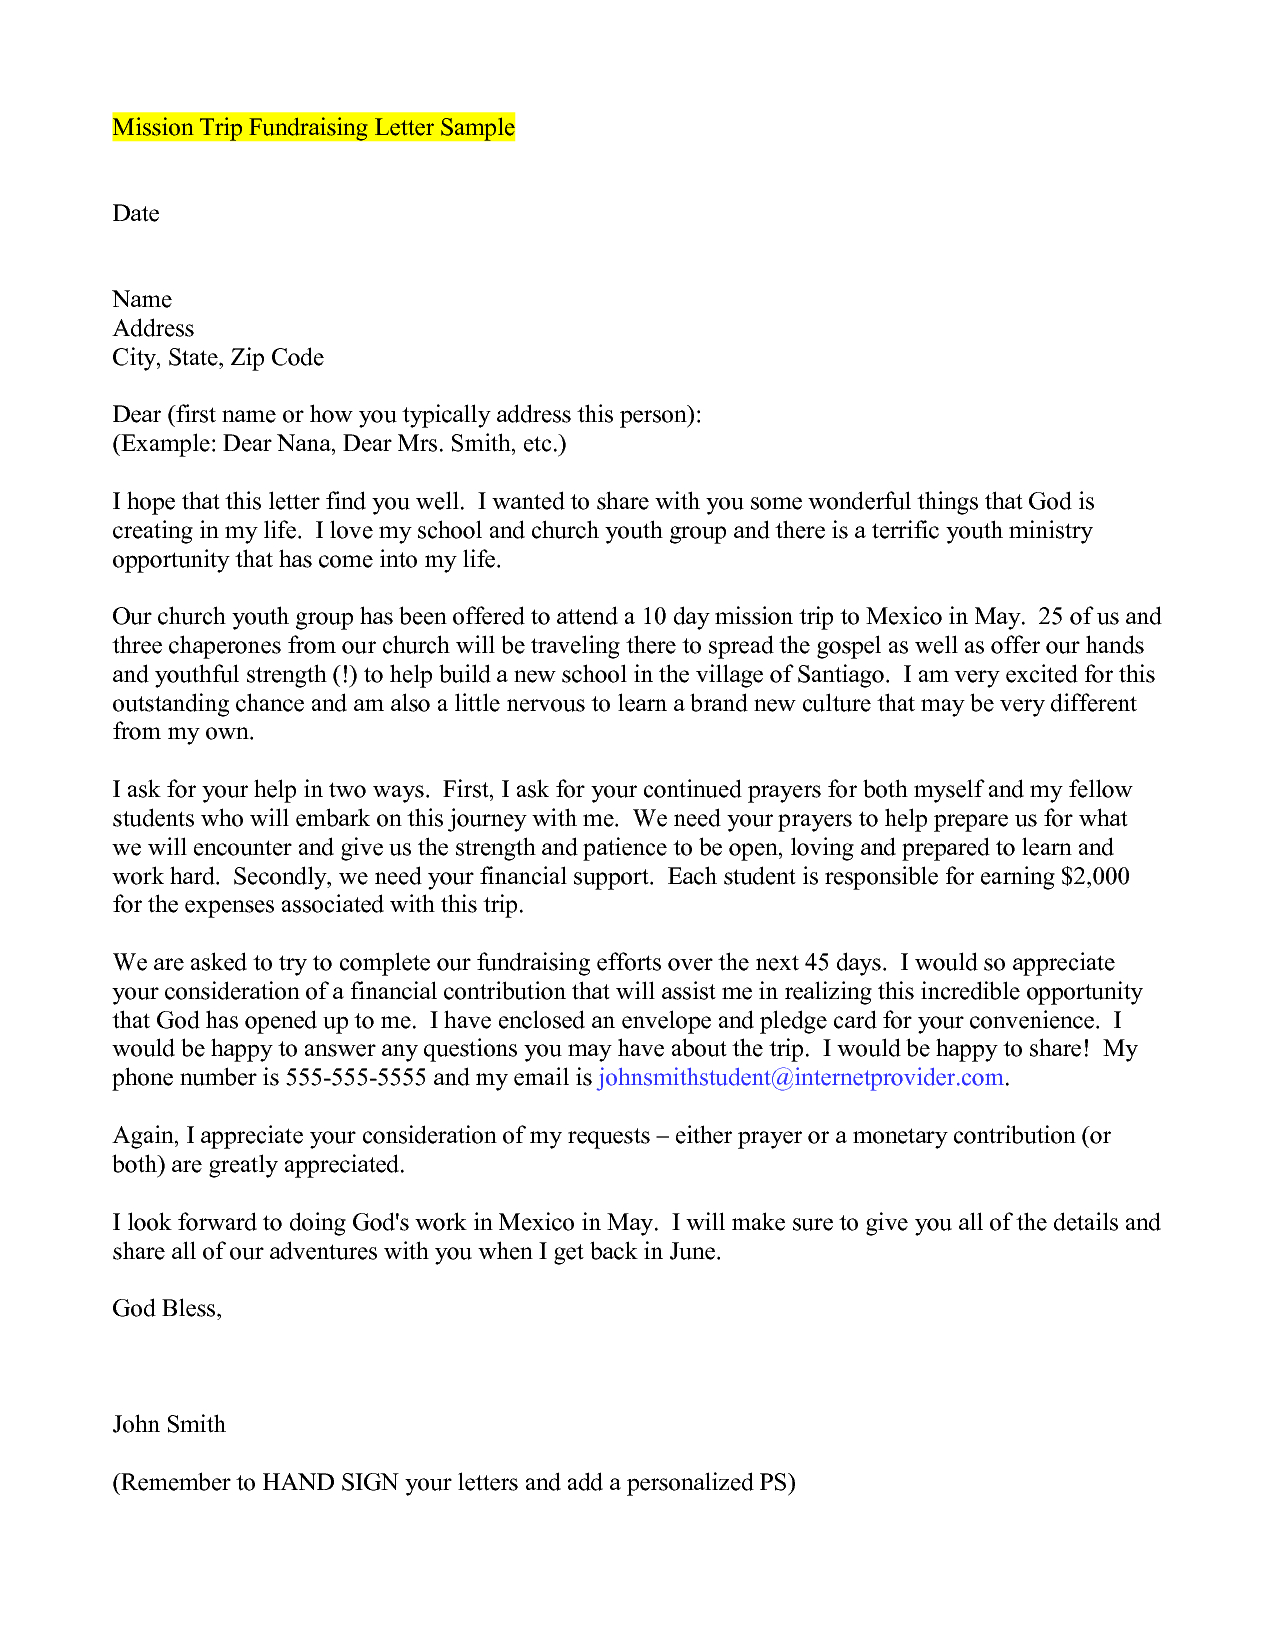 Mission Trip Support Letter Template - How to Write A Mission Trip Support Letter Choice Image Letter